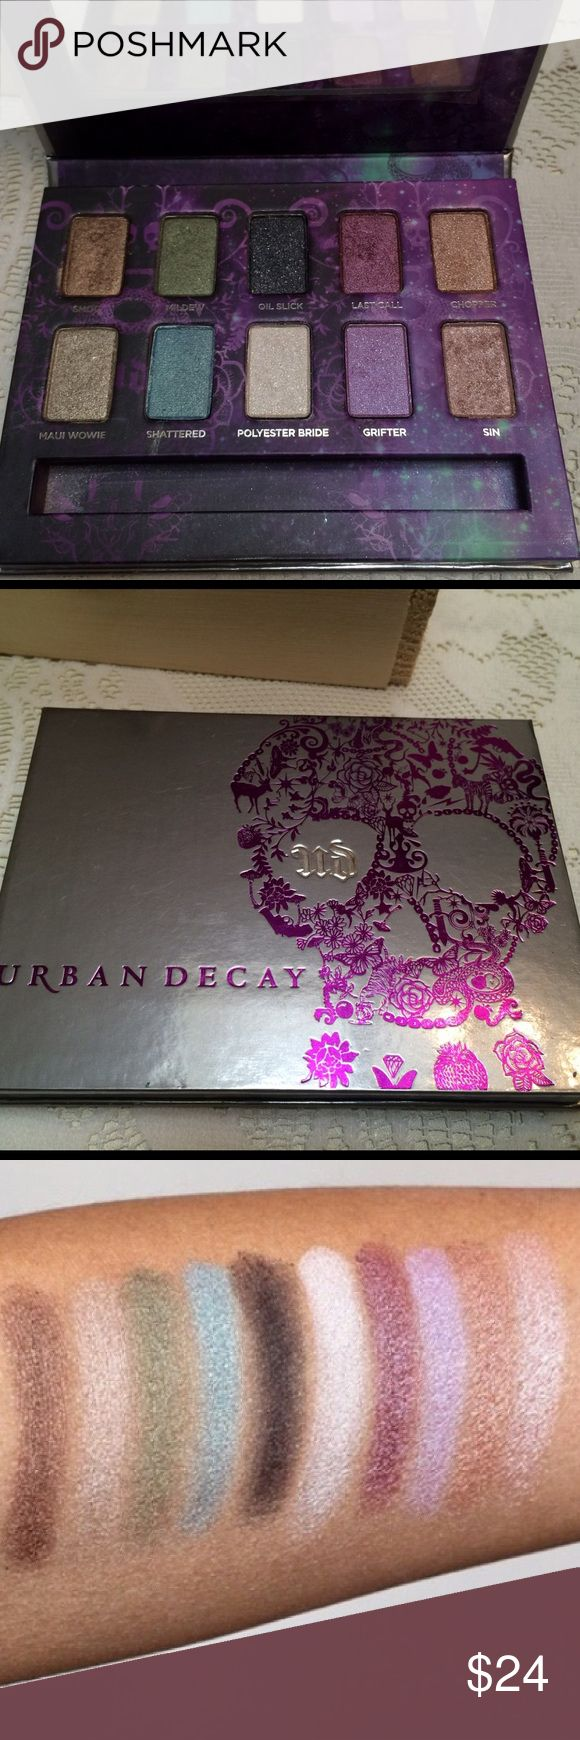 Urban Decay Ammo Palatte💀 This was used lightly for a week.  It's 10 of Urban Decays best selling shades!!  The colors are beautiful and highly pigmented.  It's a new formula so they're more vivid, bolder, and velvety. This palette has been sold out in stores for awhile now. Urban Decay Makeup Eyeshadow